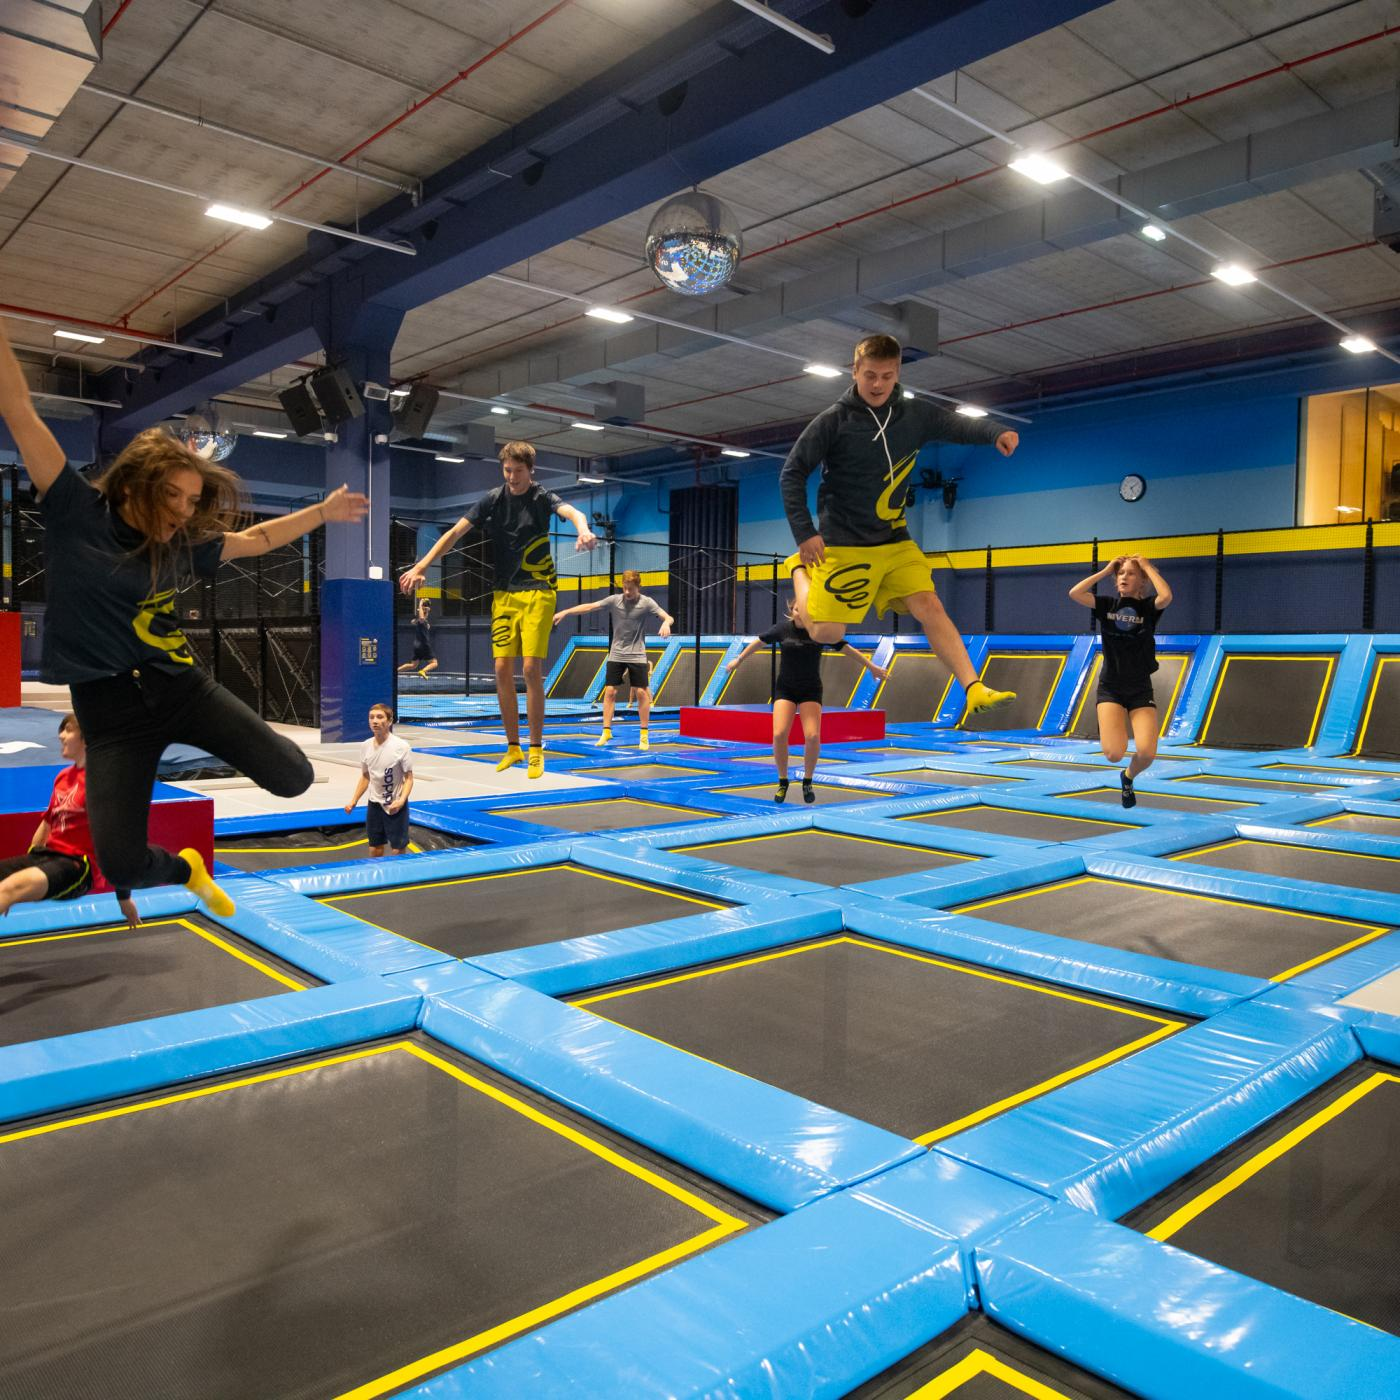 Trampolin Indoorspielplatz Flip Lab Center in Graz.